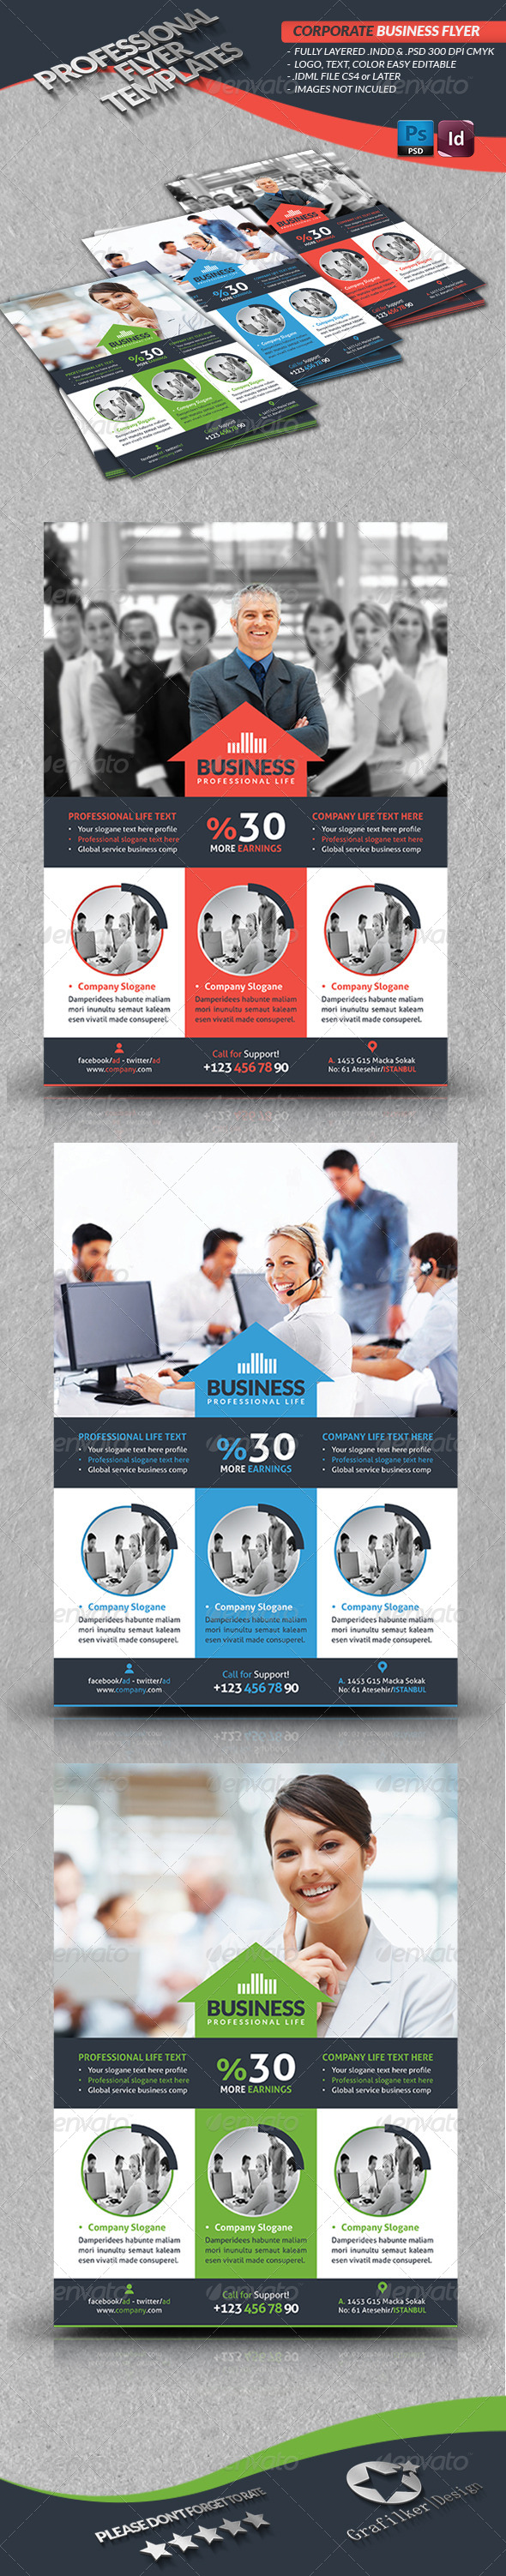 GraphicRiver Corporate Business Flyer 4110769